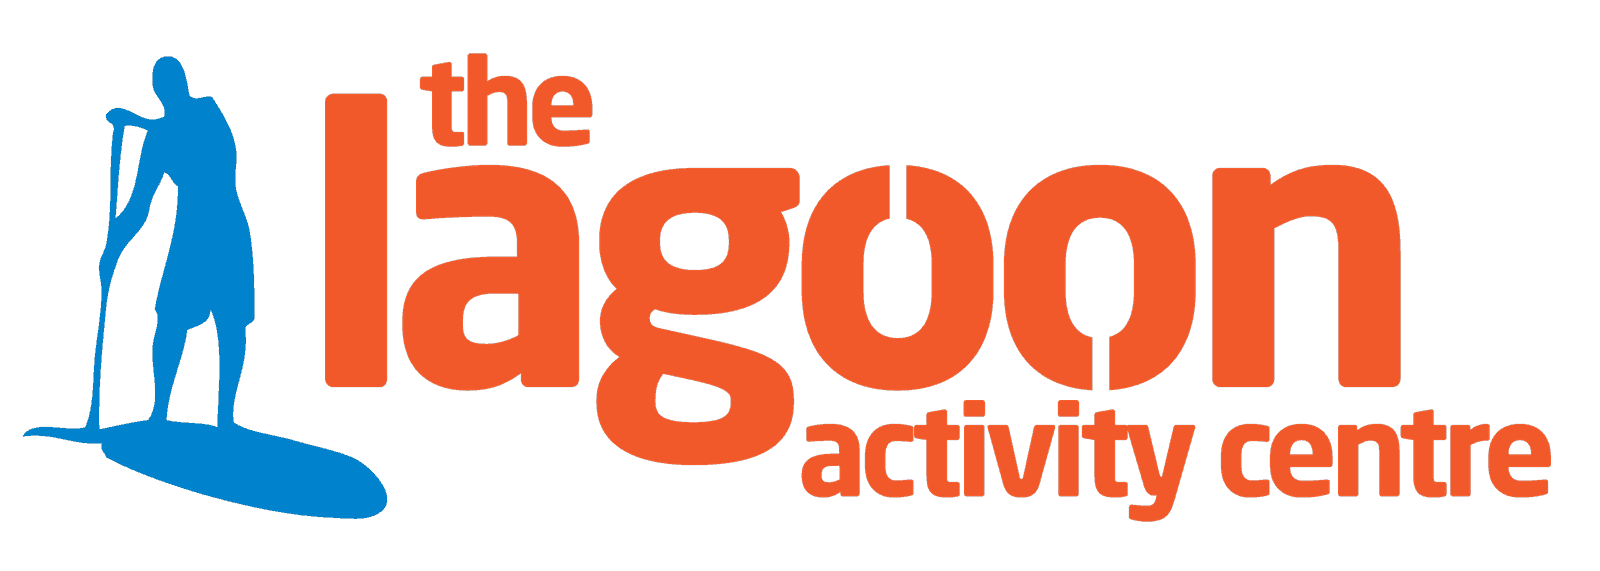 The Lagoon Activity Centre, Rosscarbery